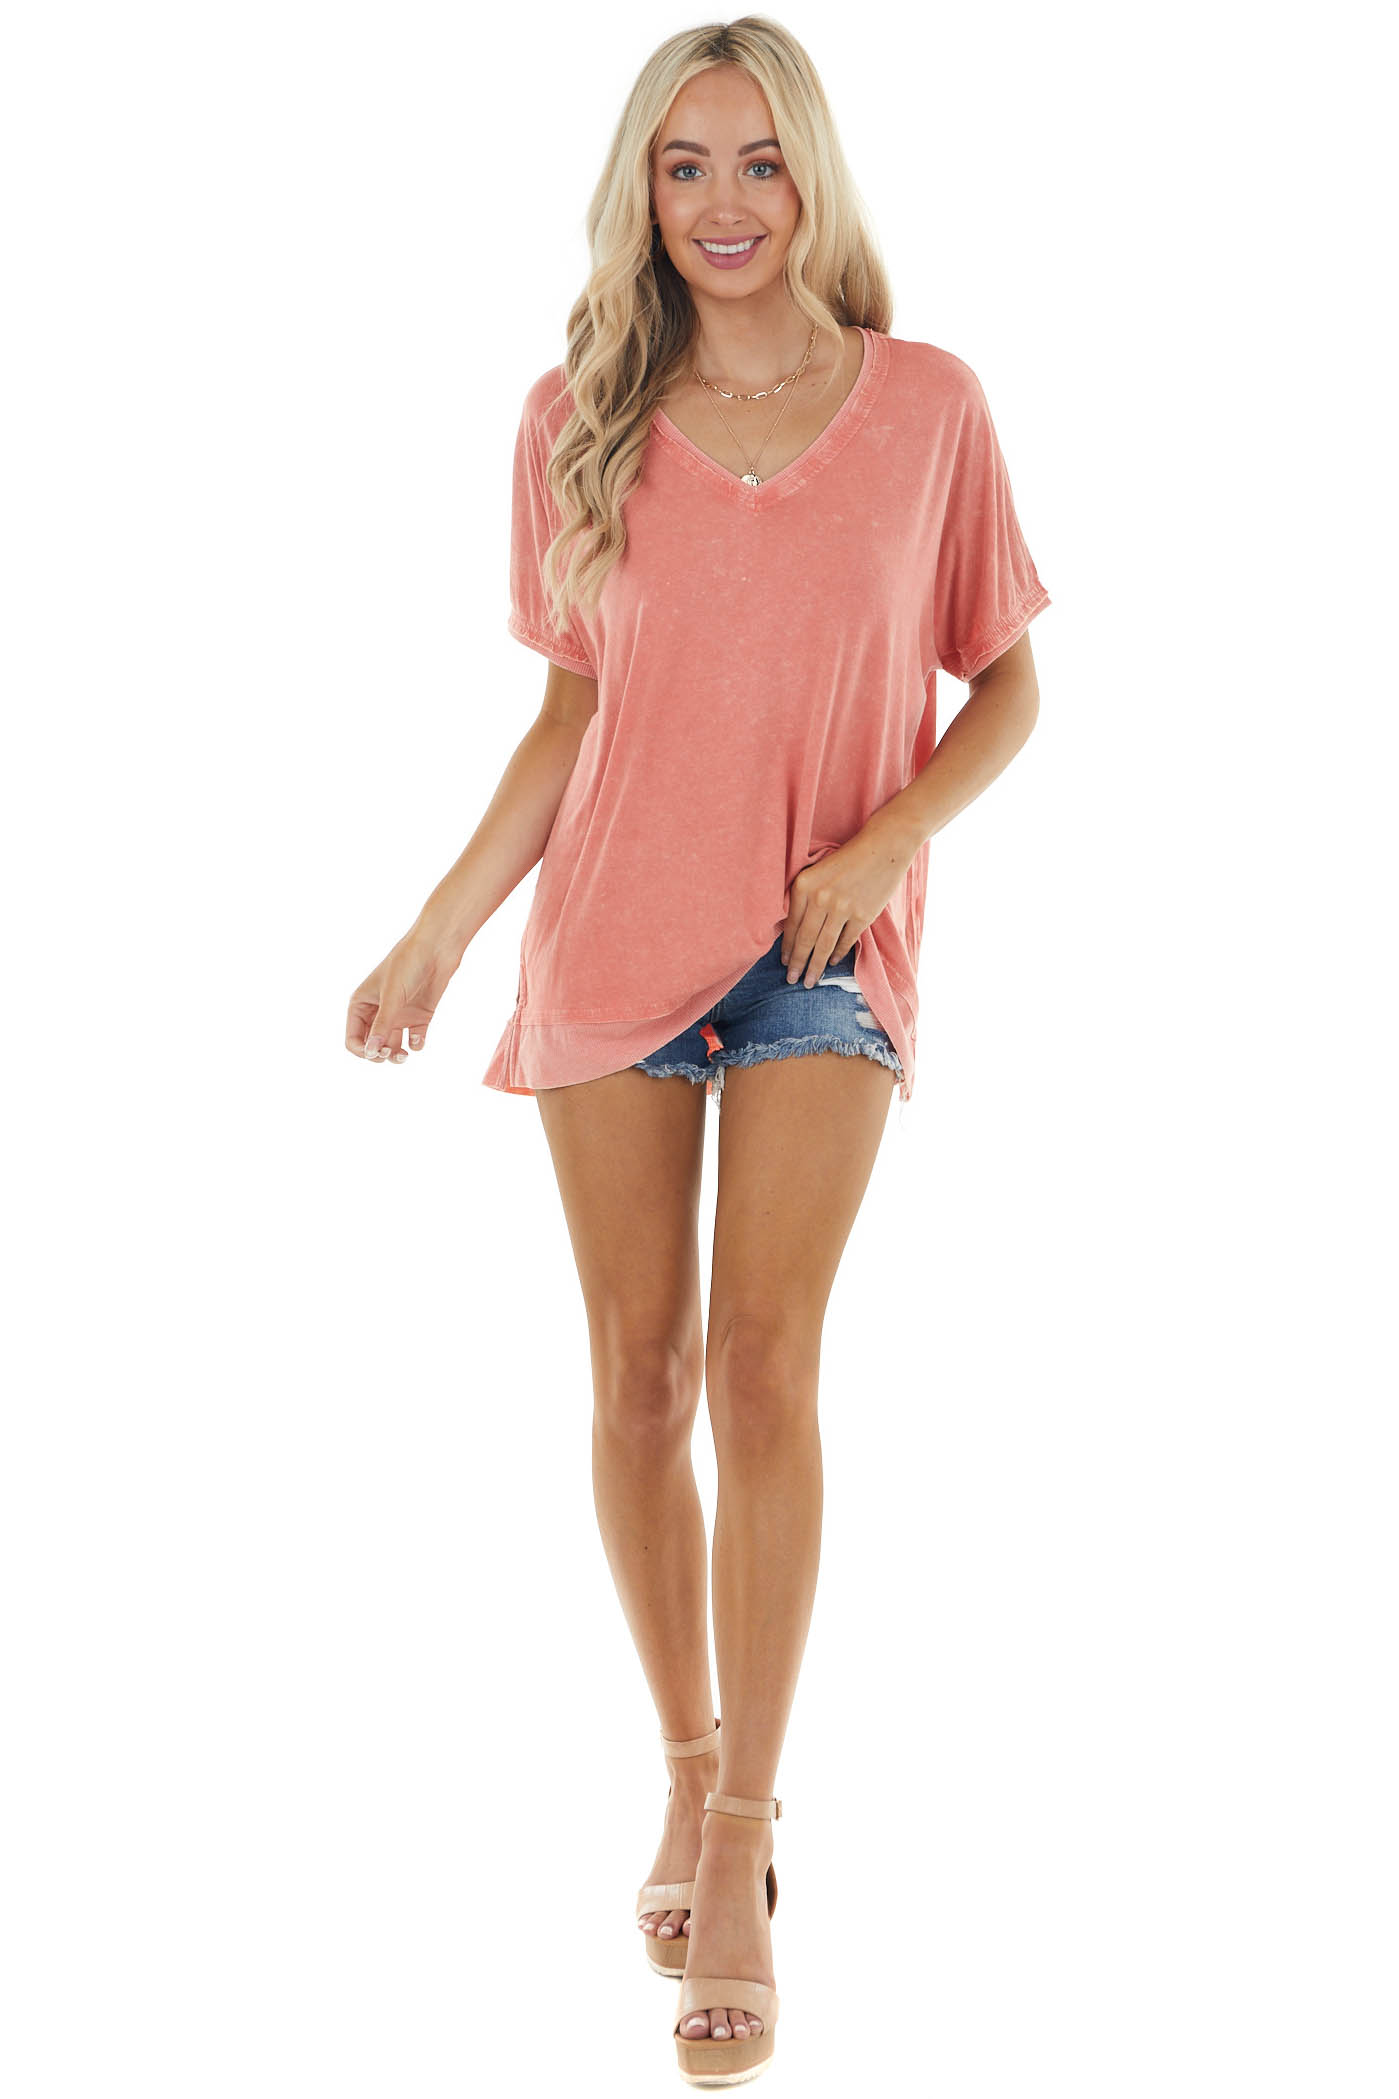 Salmon V Neck Stretchy Loose Knit Top with Short Sleeves